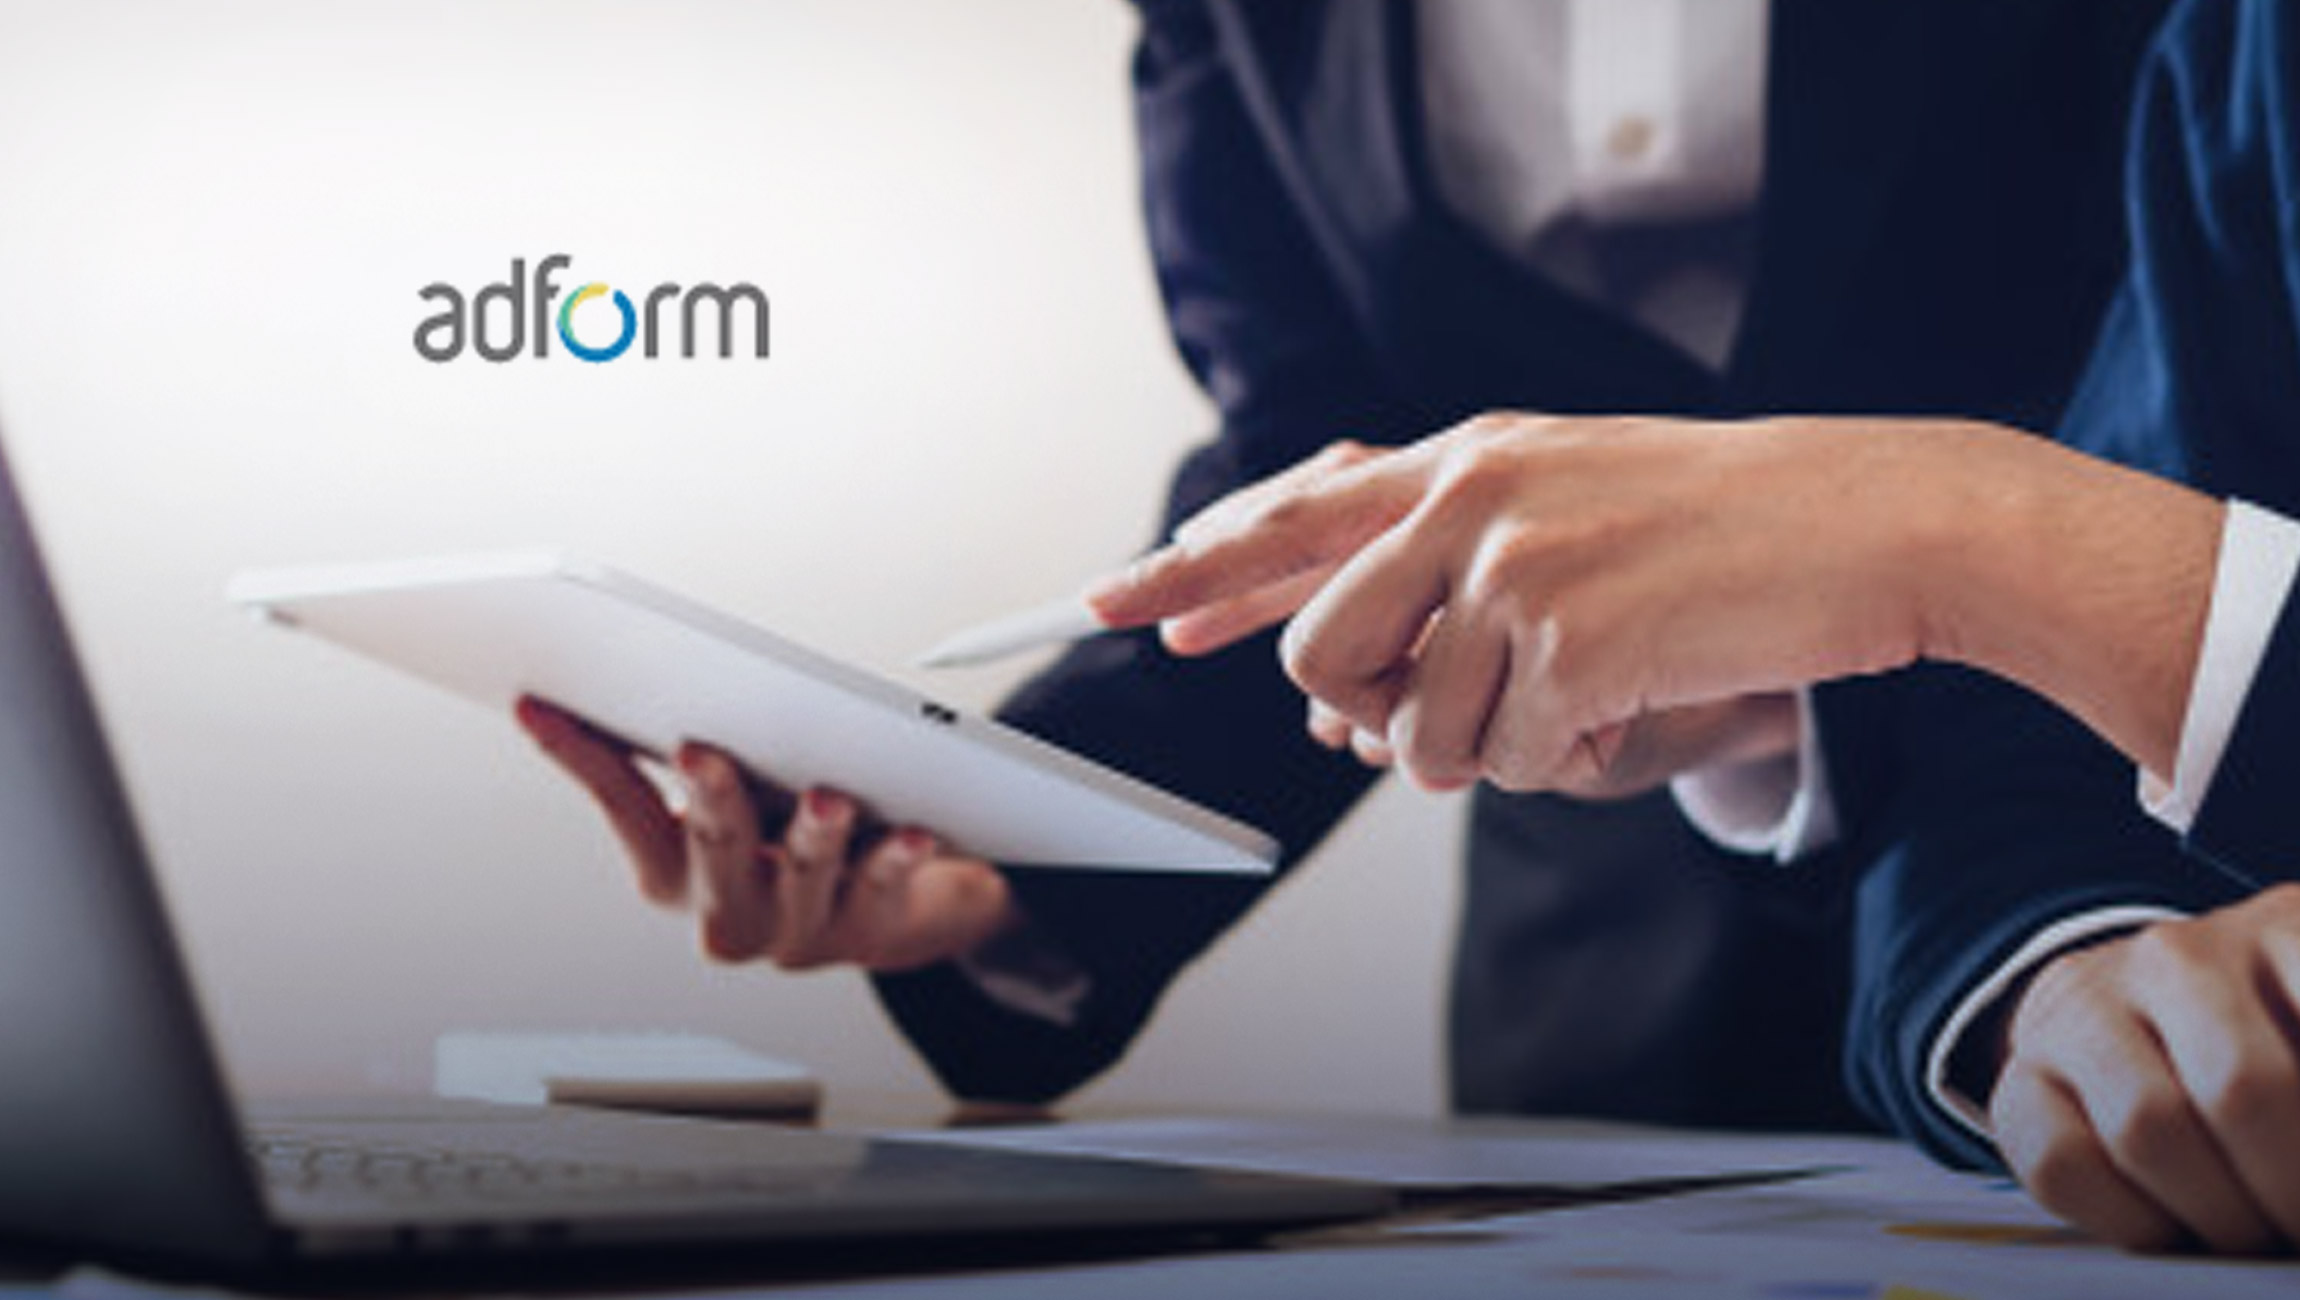 Adform's Proven First-Party ID Solution Is Ready to Solve the Cookie Problem